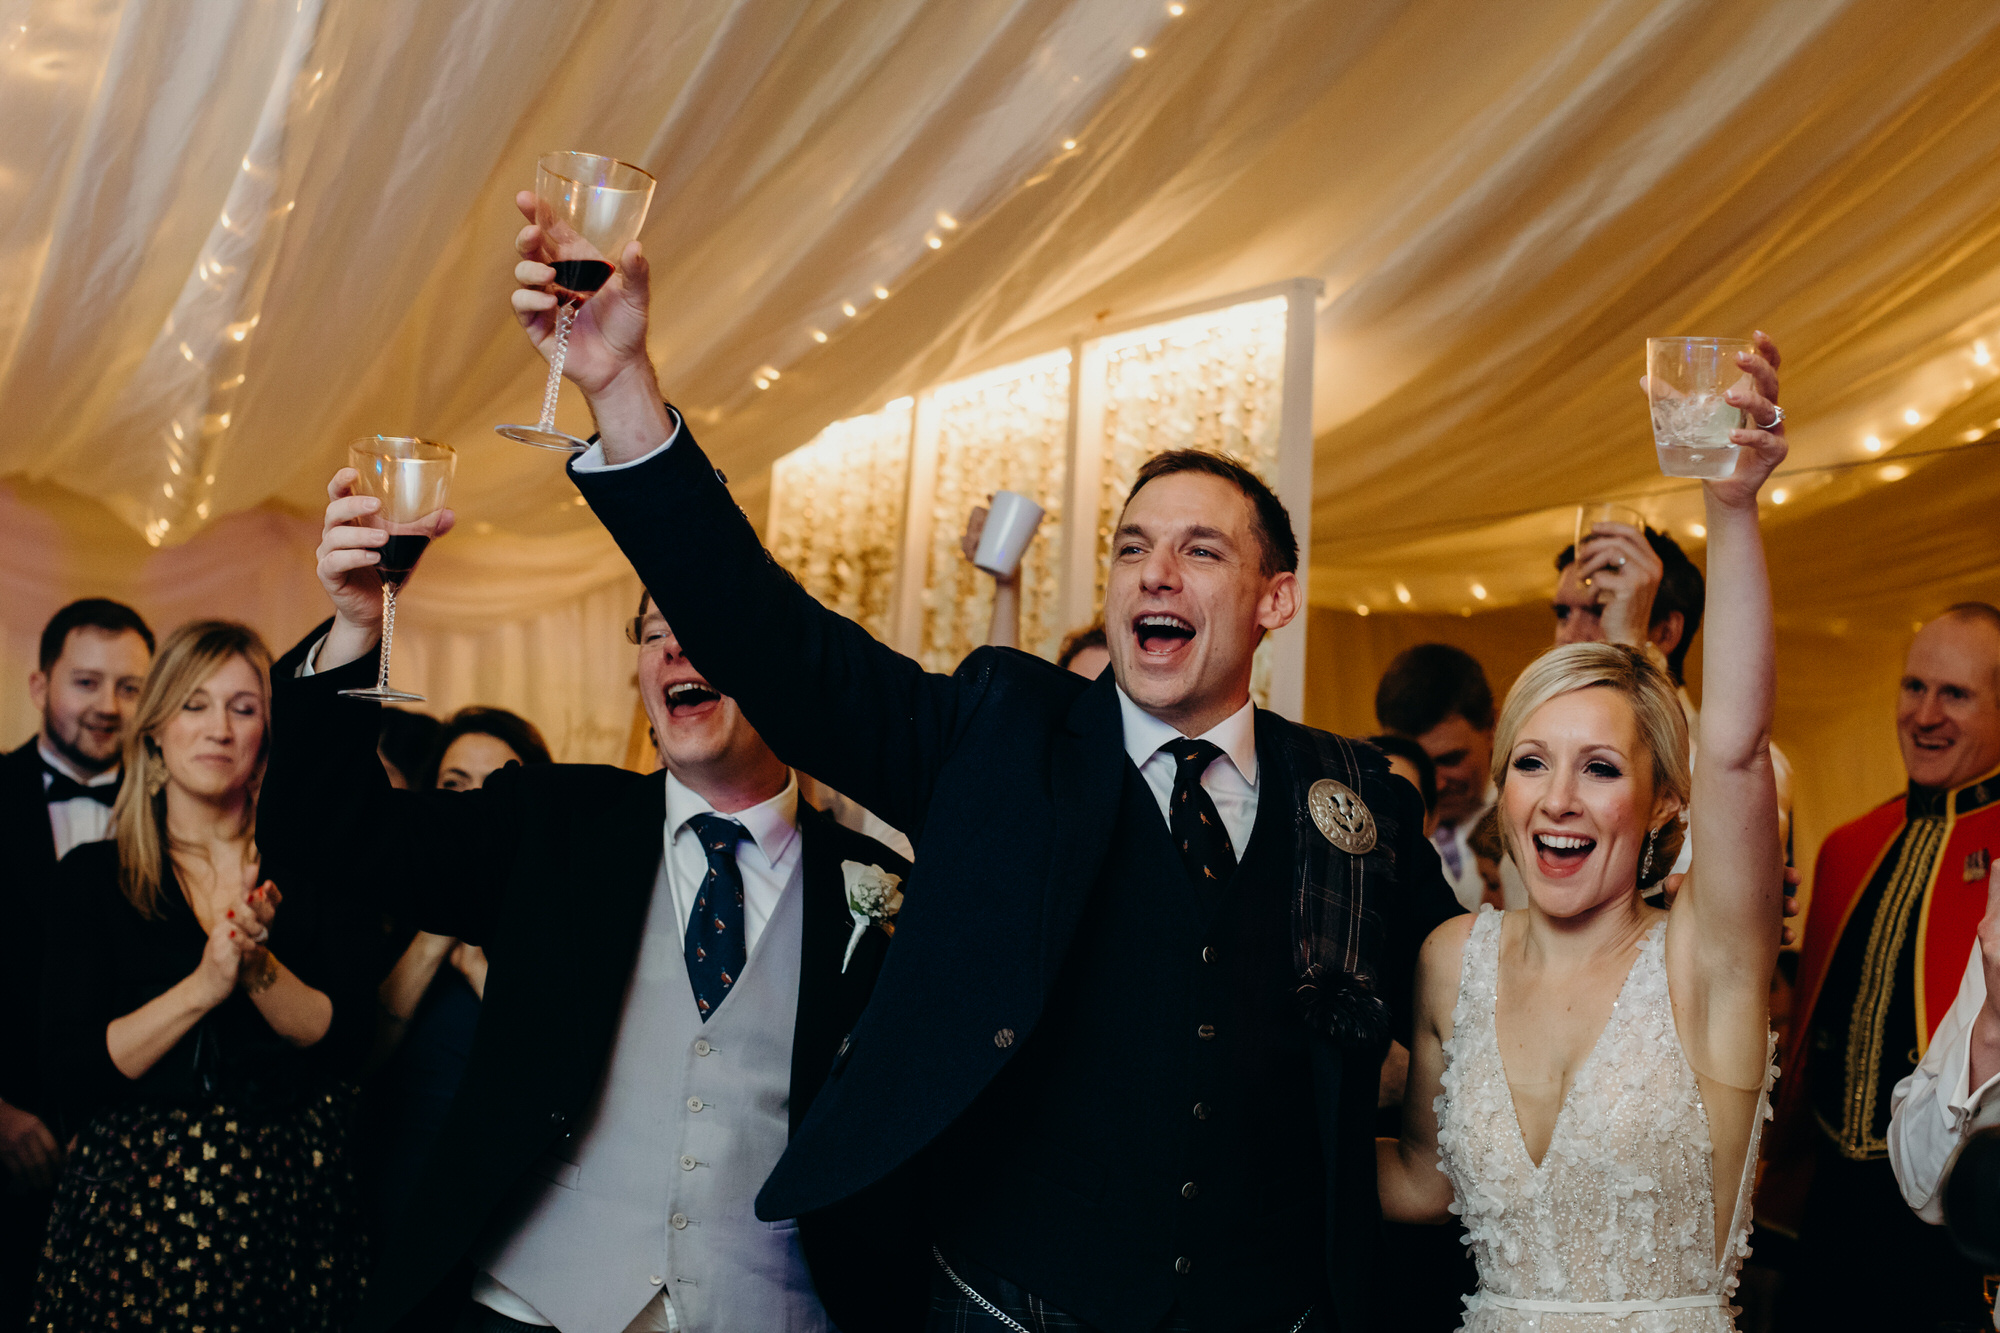 Cheers from wedding guests